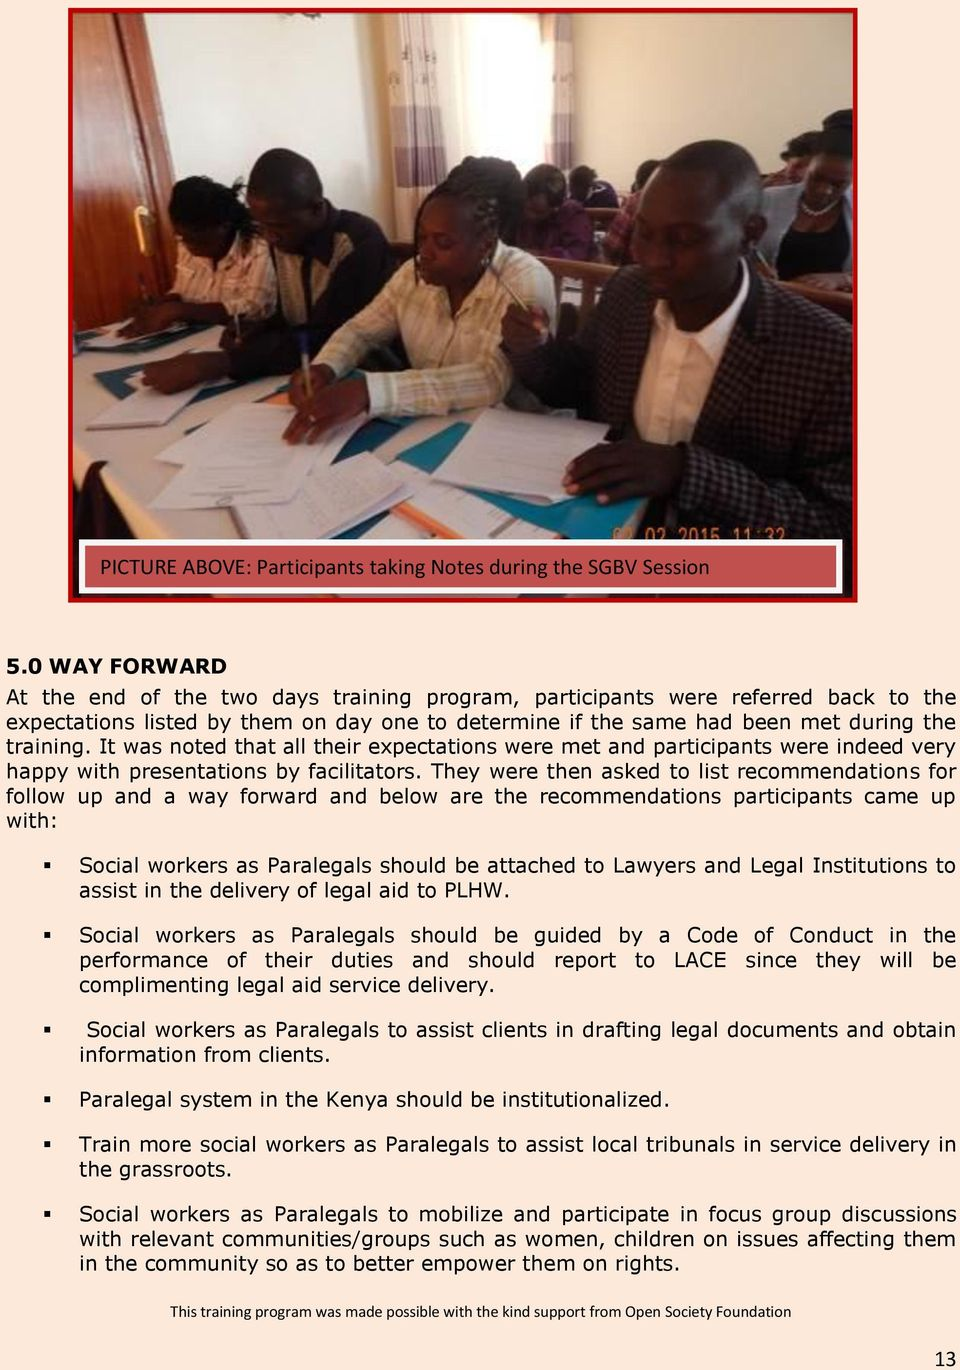 PARALEGAL TRAINING FOR SOCIAL WORKERS REPORT VENUE: Eldoret